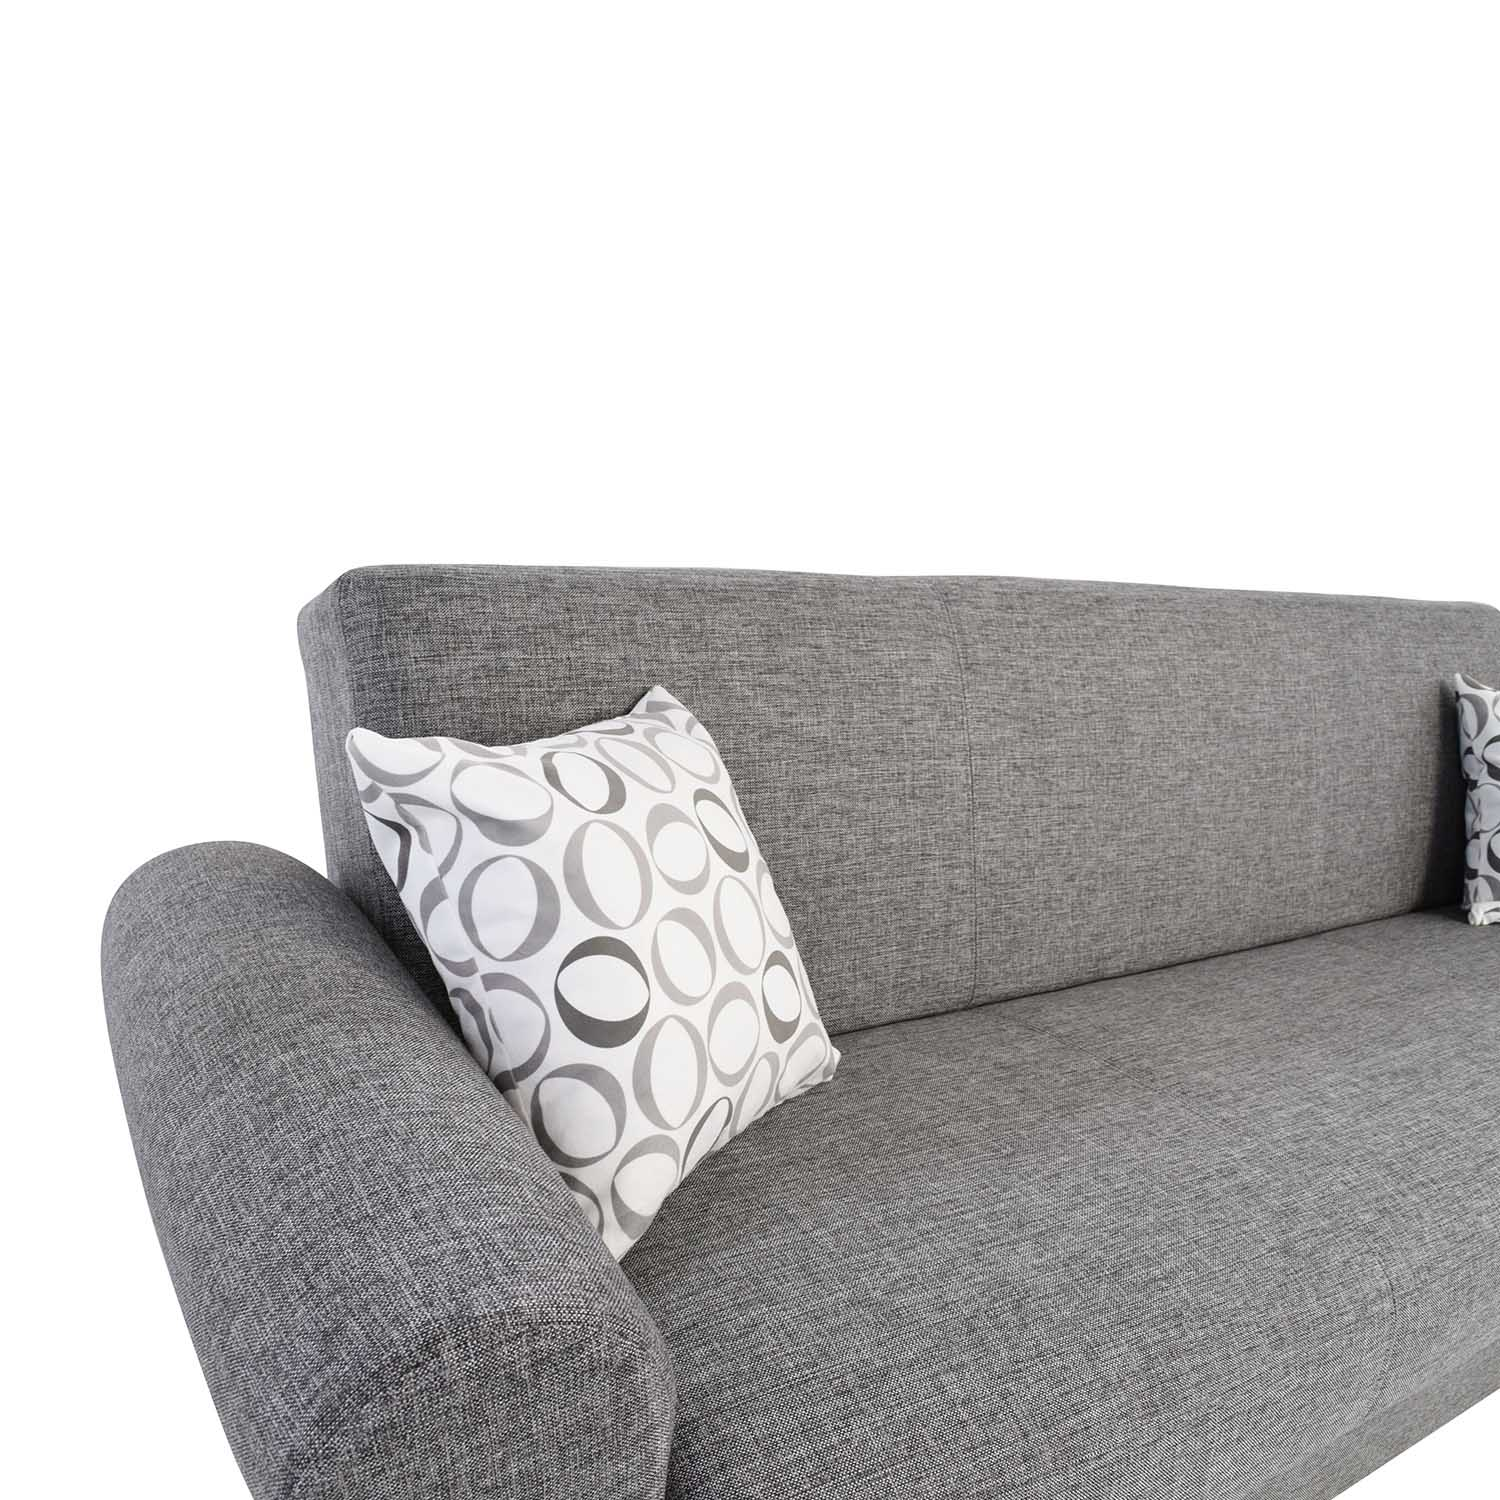 43 Off Istikbal Istikbal Sleeper Couch With Storage Sofas